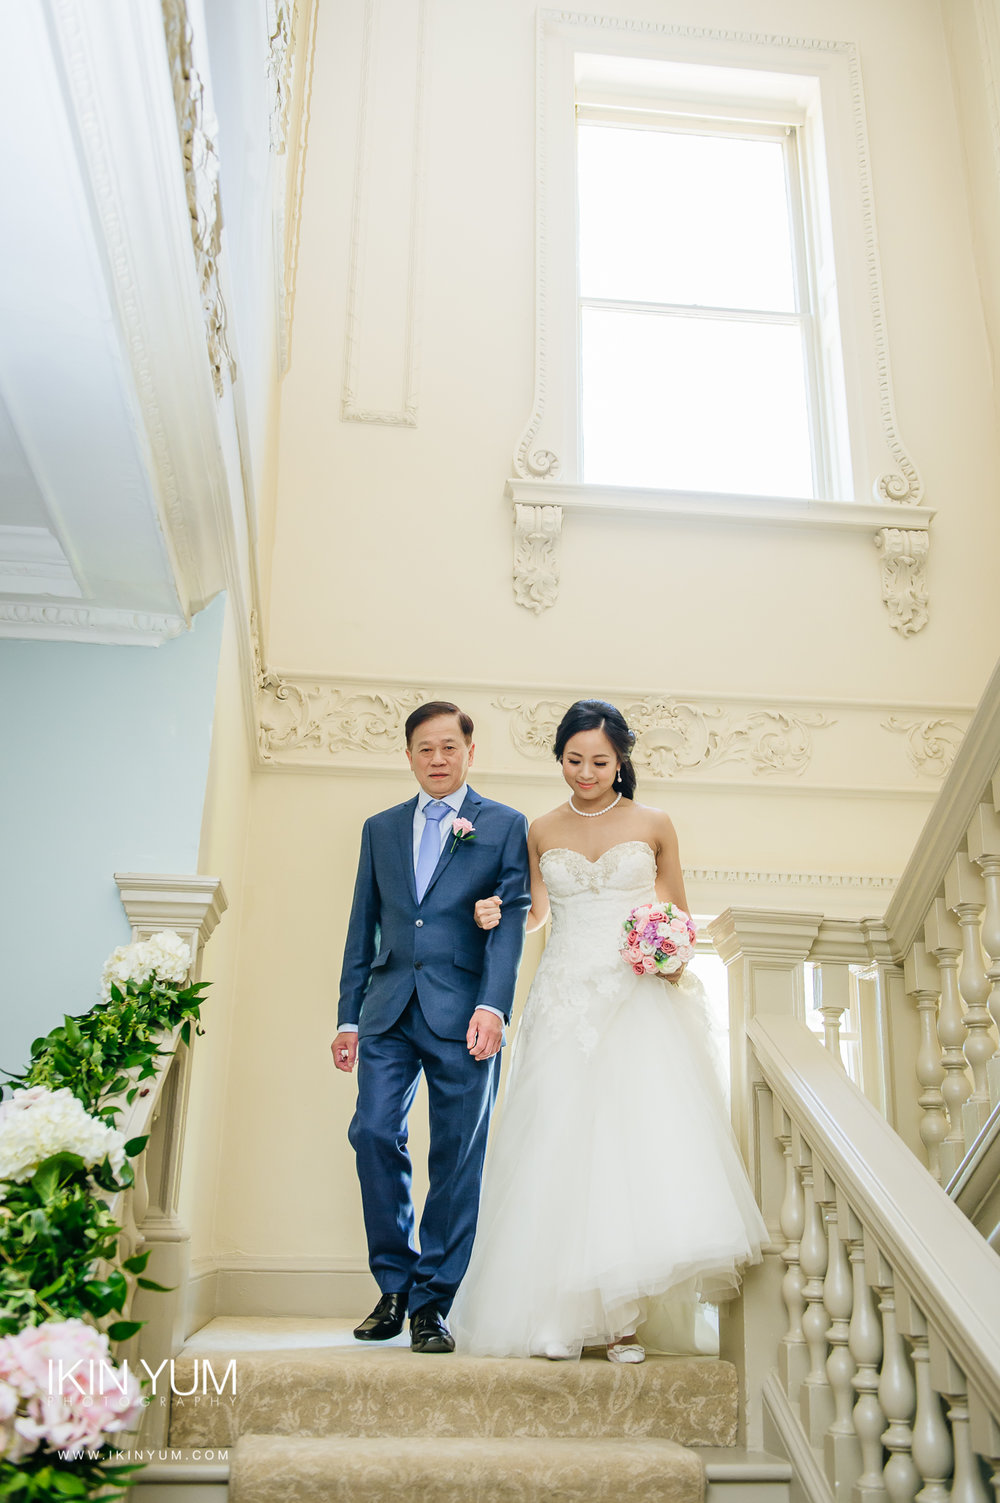 Morden Hall Wedding london - Ikin Yum Photography-058.jpg